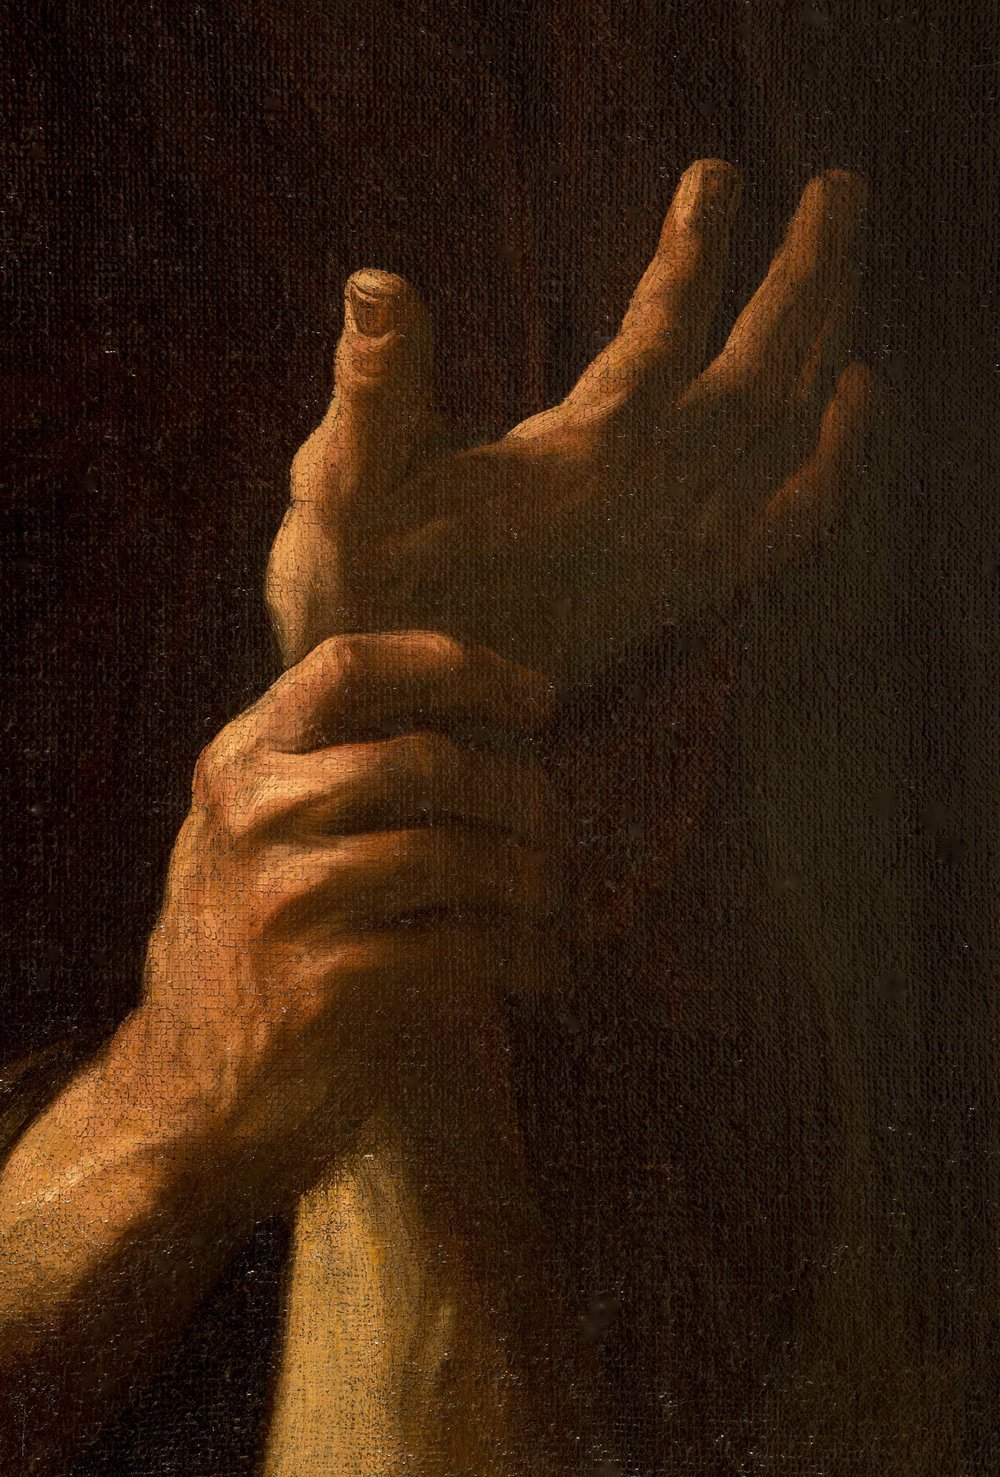 GIOVANNI BATTISTA BEINASCHI   (Fossano, near Turin 1636-1688 Naples)    The Martyrdom of Saint Peter    Oil on canvas  114½ x 76 inches  (290.8 x 193.1 cm)    detail of HAND